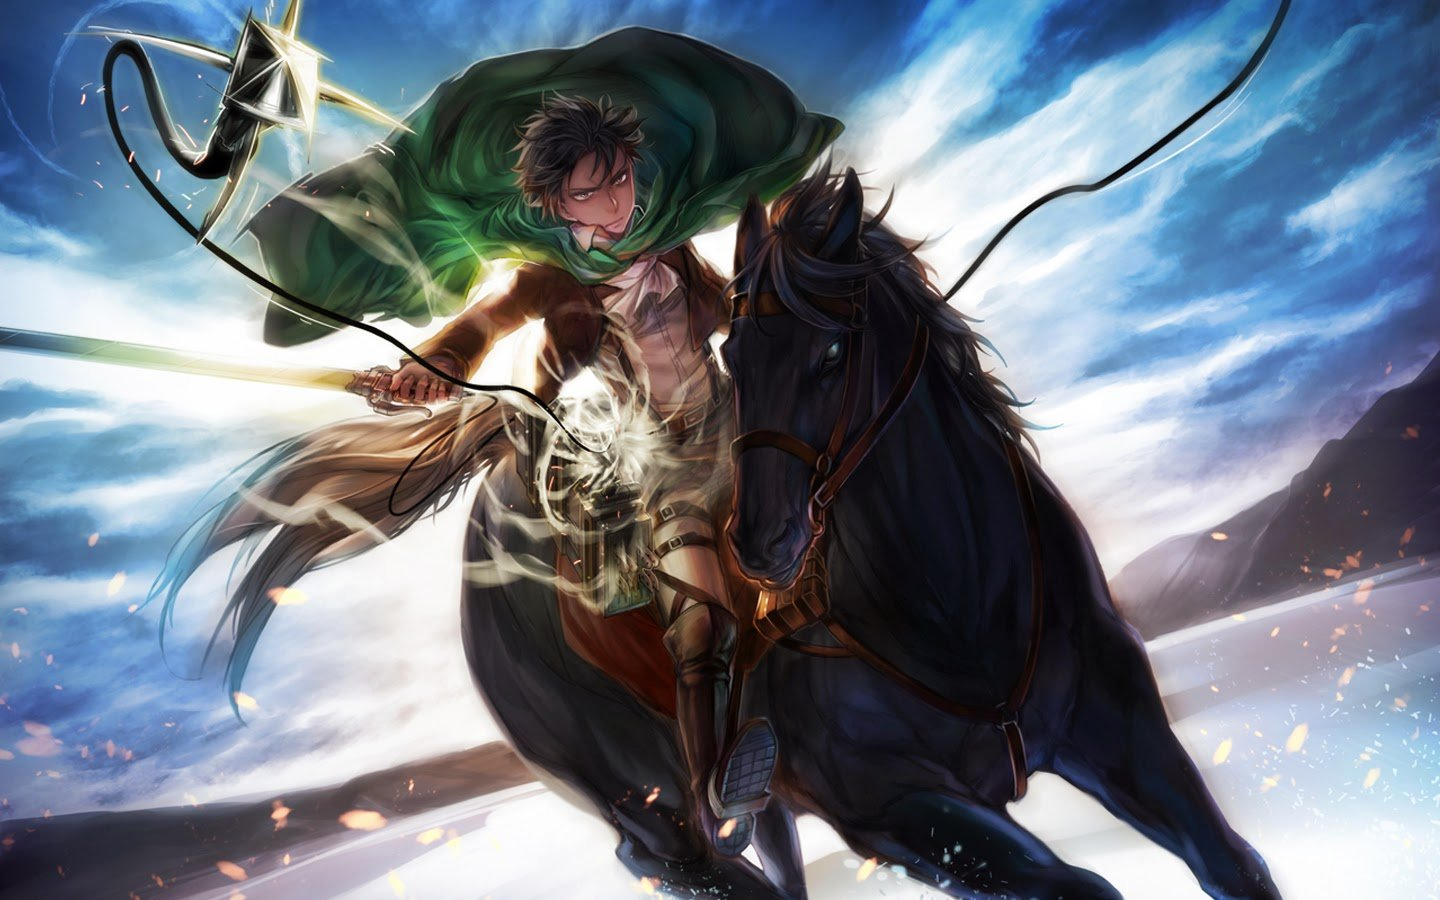 Attack On Titan Iphone Wallpaper Levi Levi riding horse attack on 1440x900